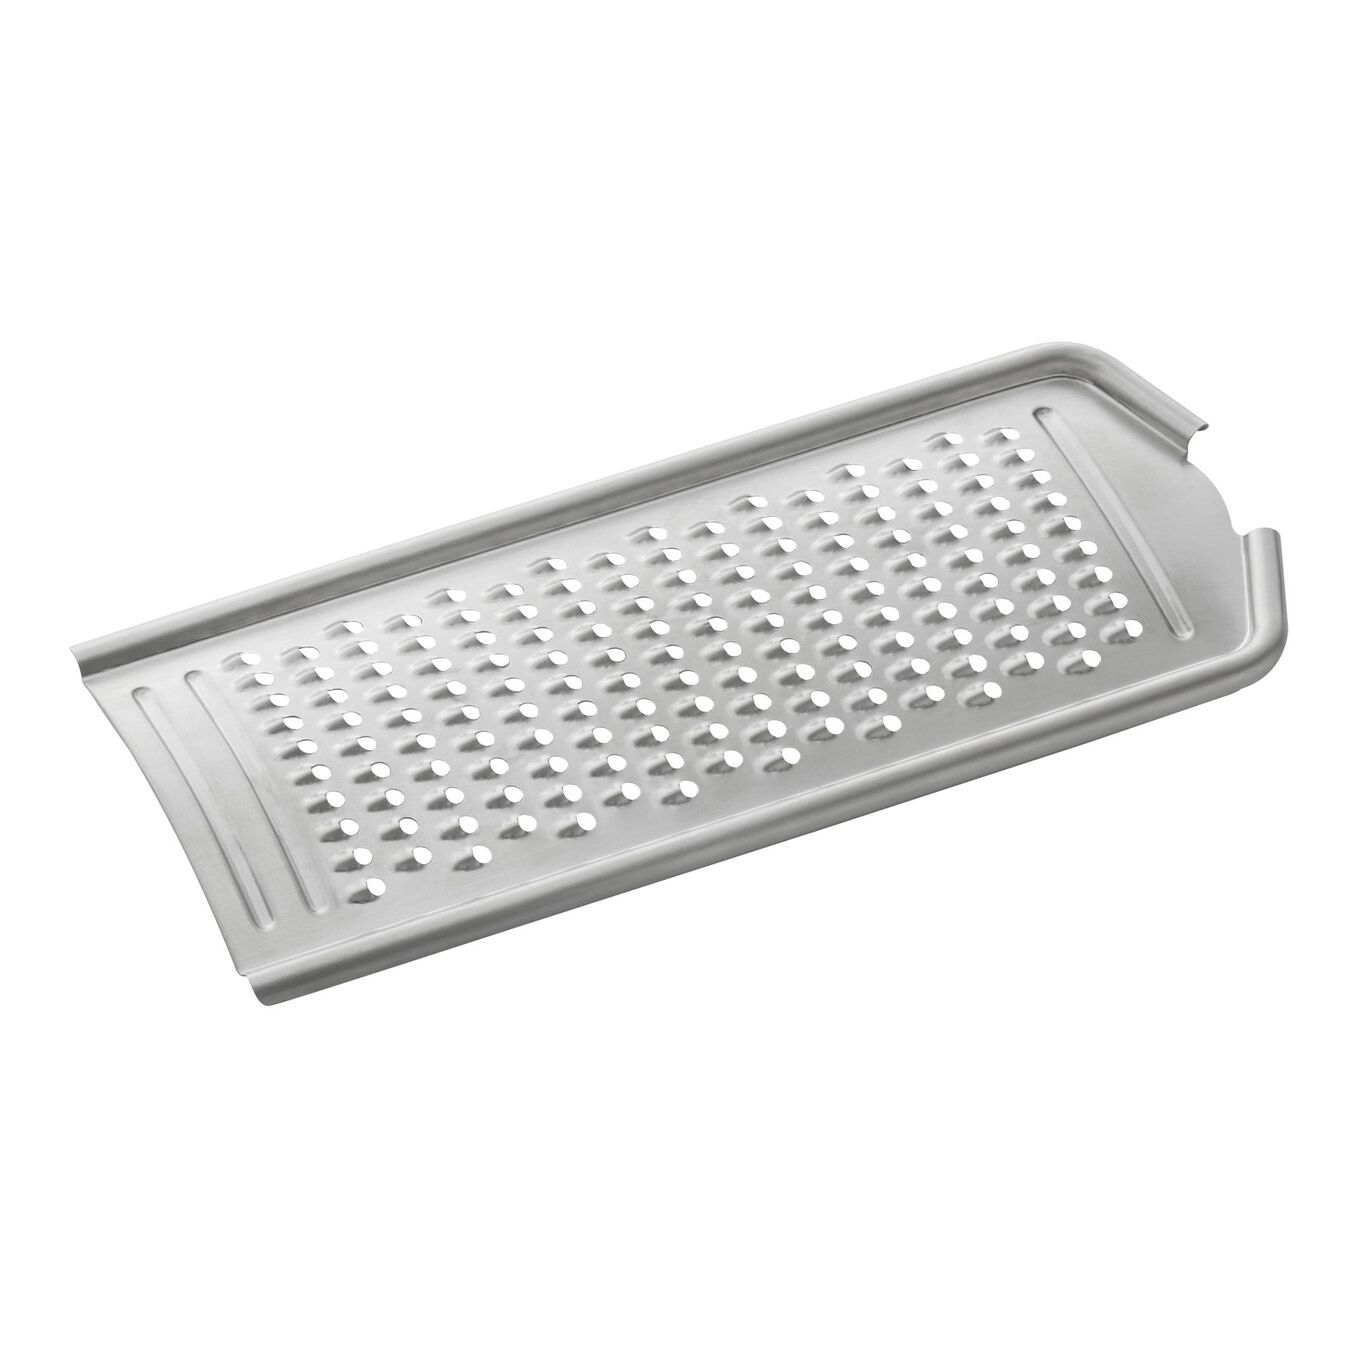 18/10 Stainless Steel, Grater,,large 3